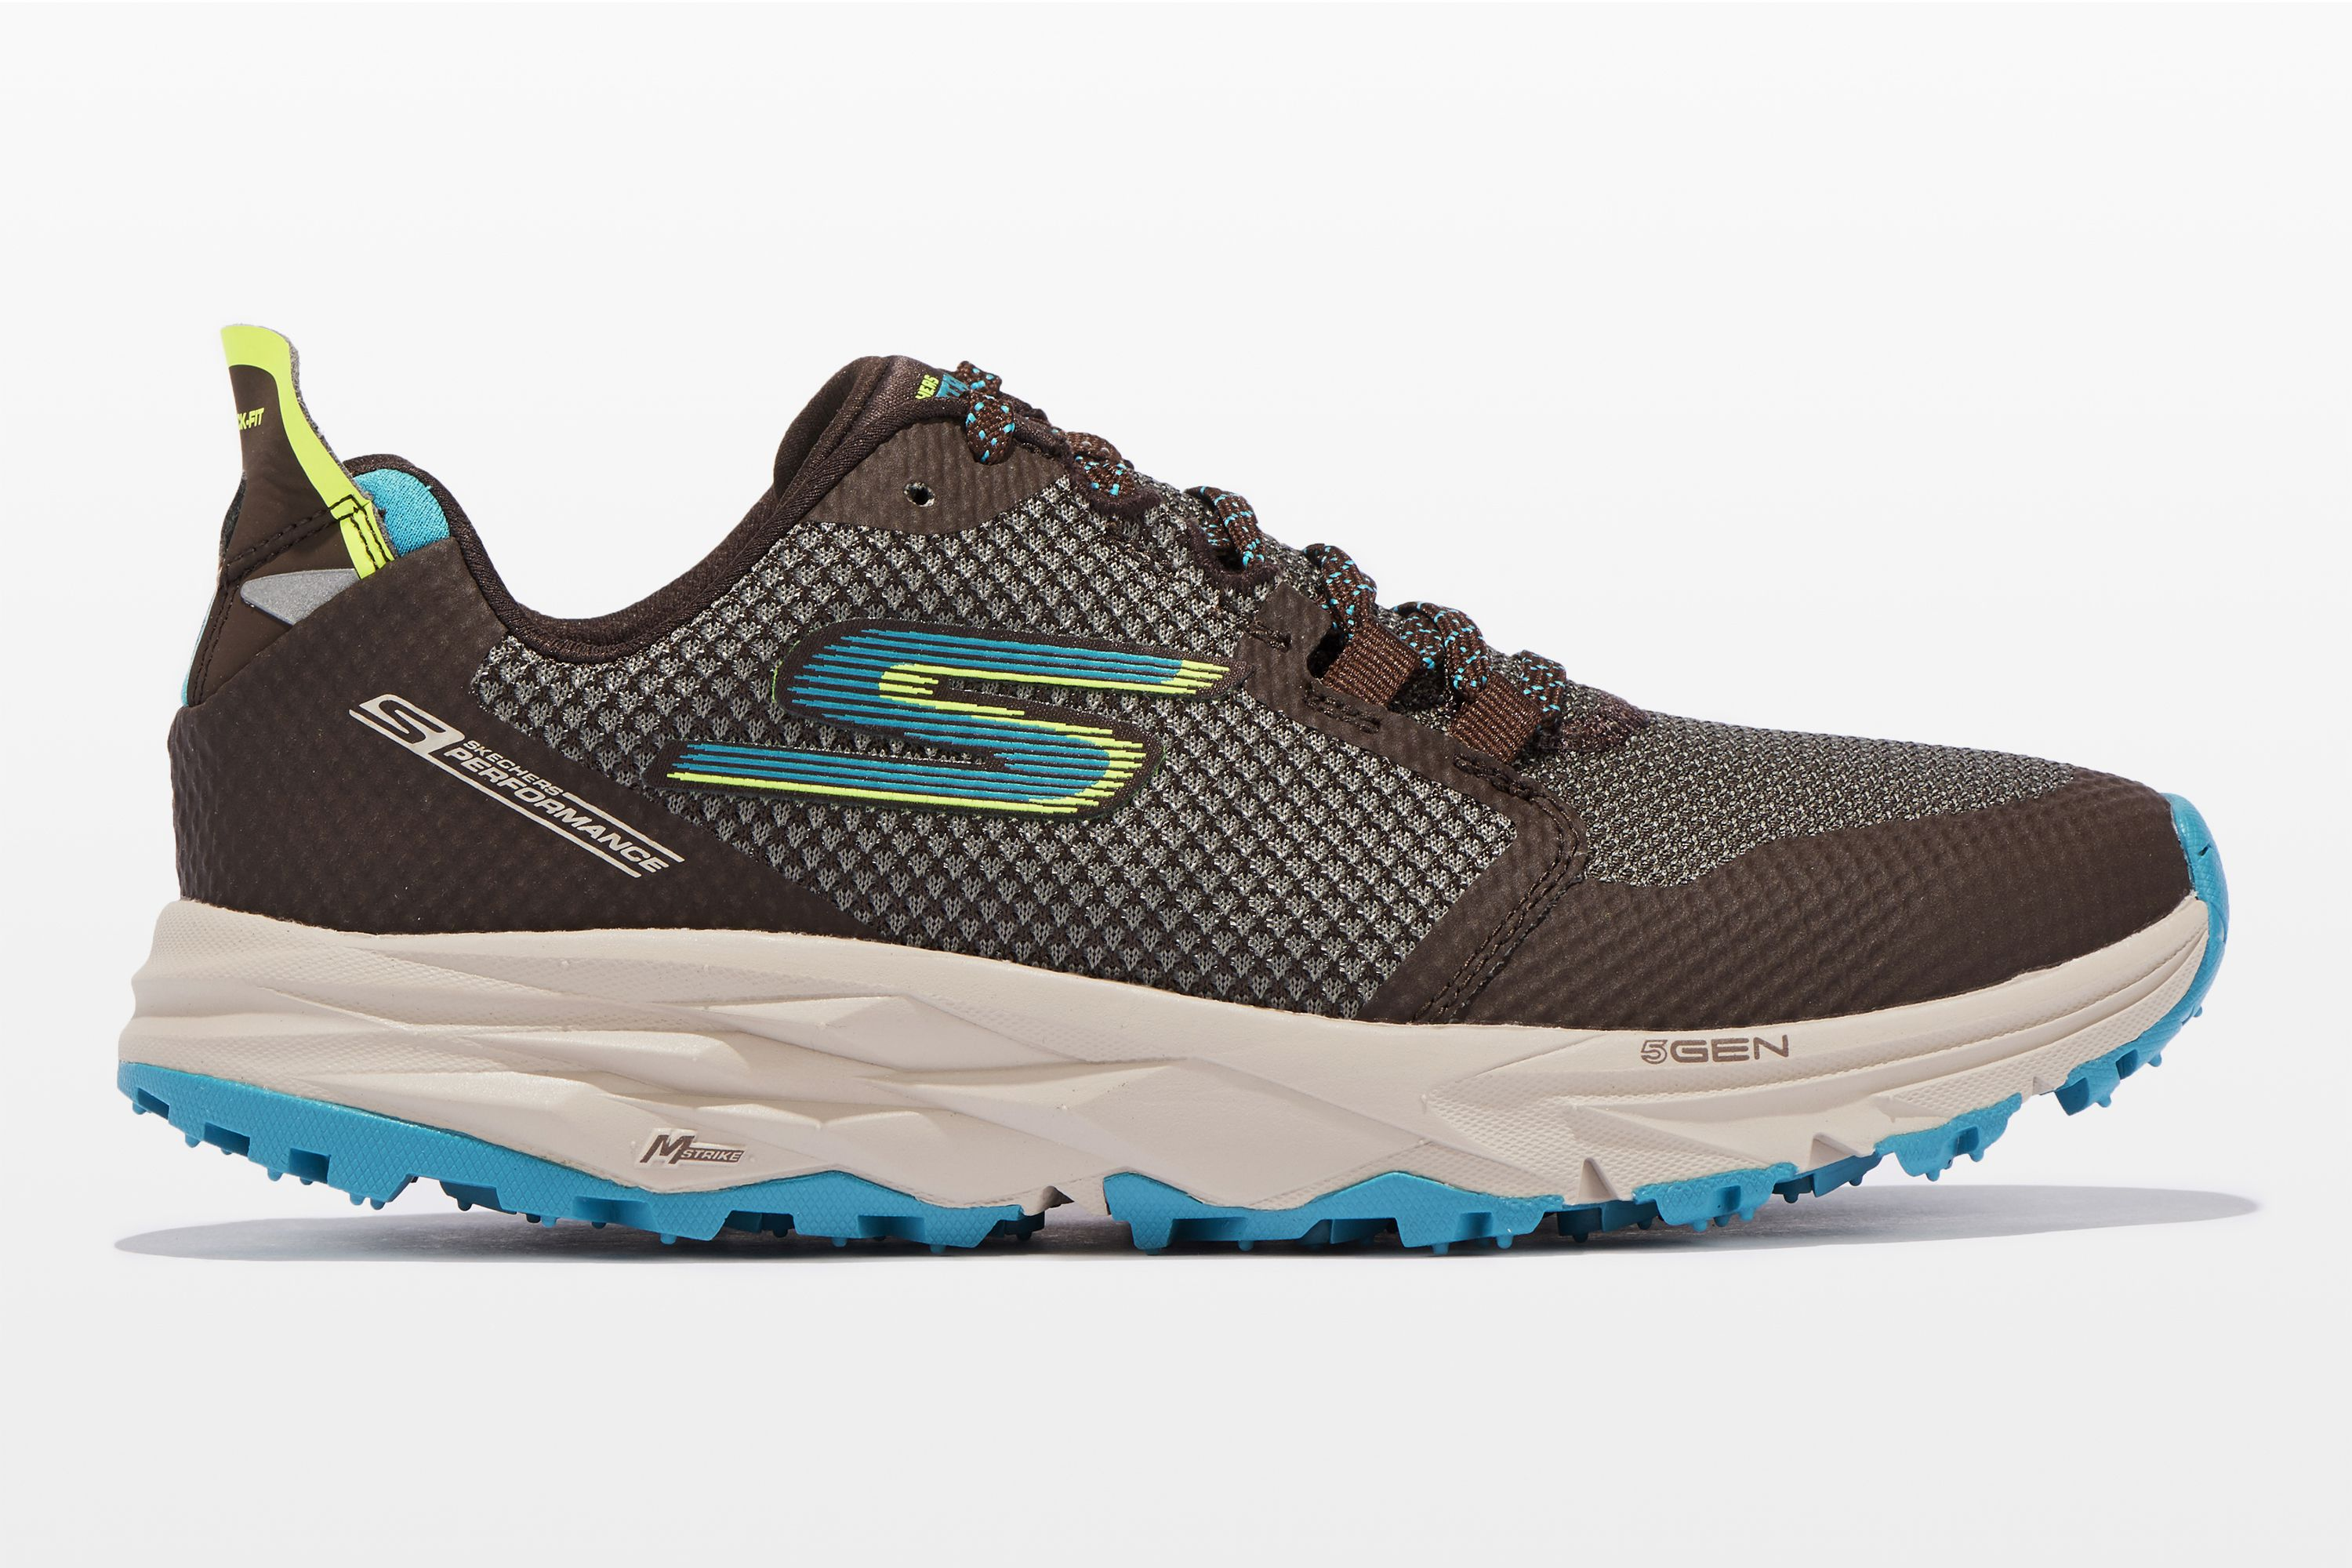 e2ef28a2c28 Skechers Running Shoes | 9 Best Skechers Shoes 2019